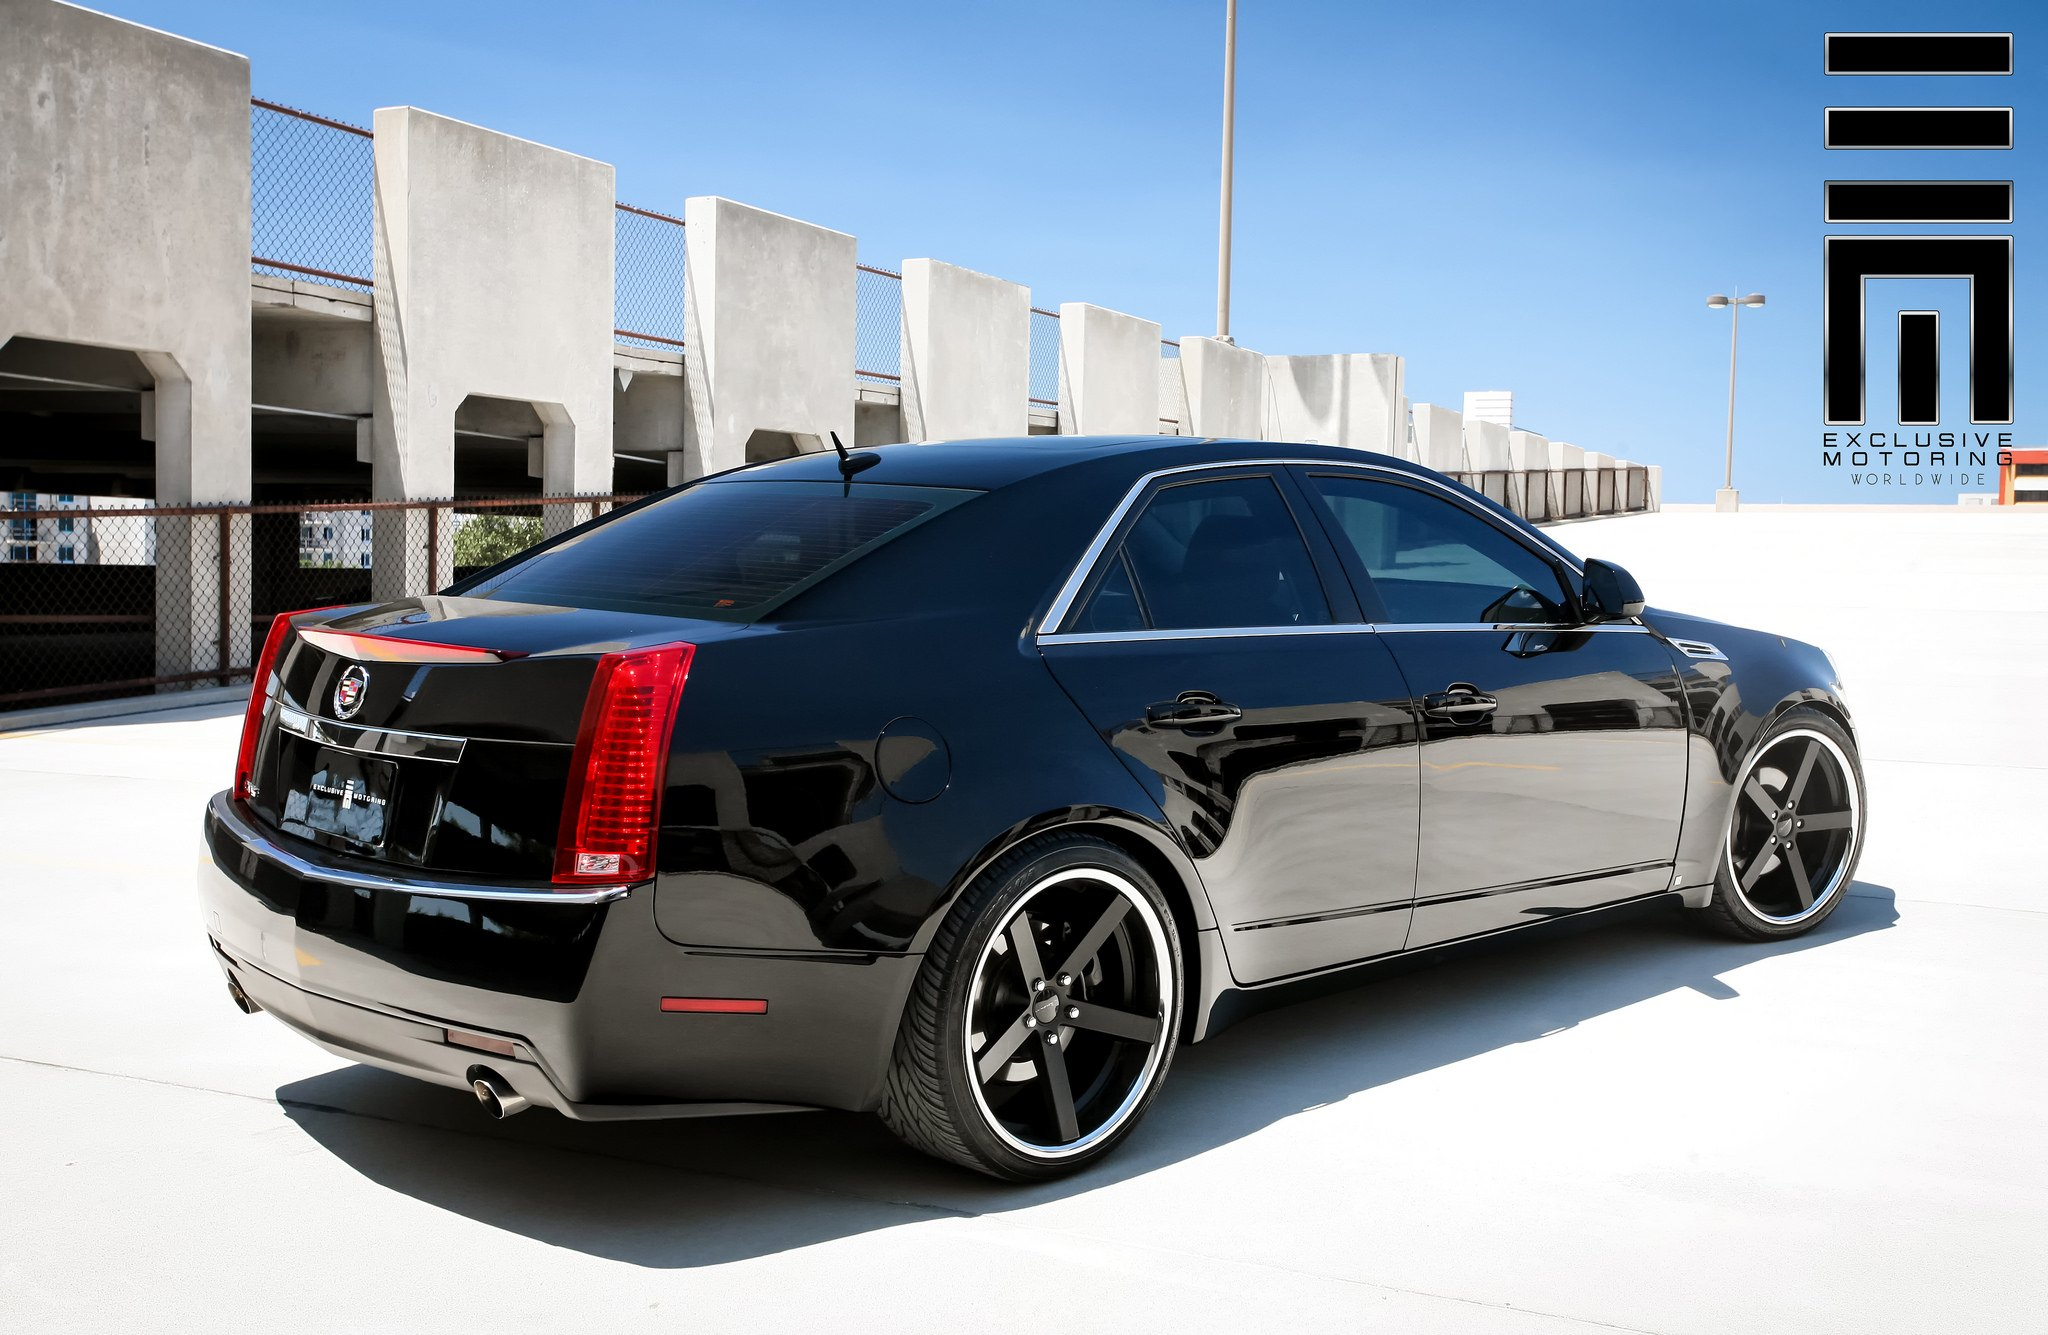 with cadillac escalade index img tires vogue for wheels replica